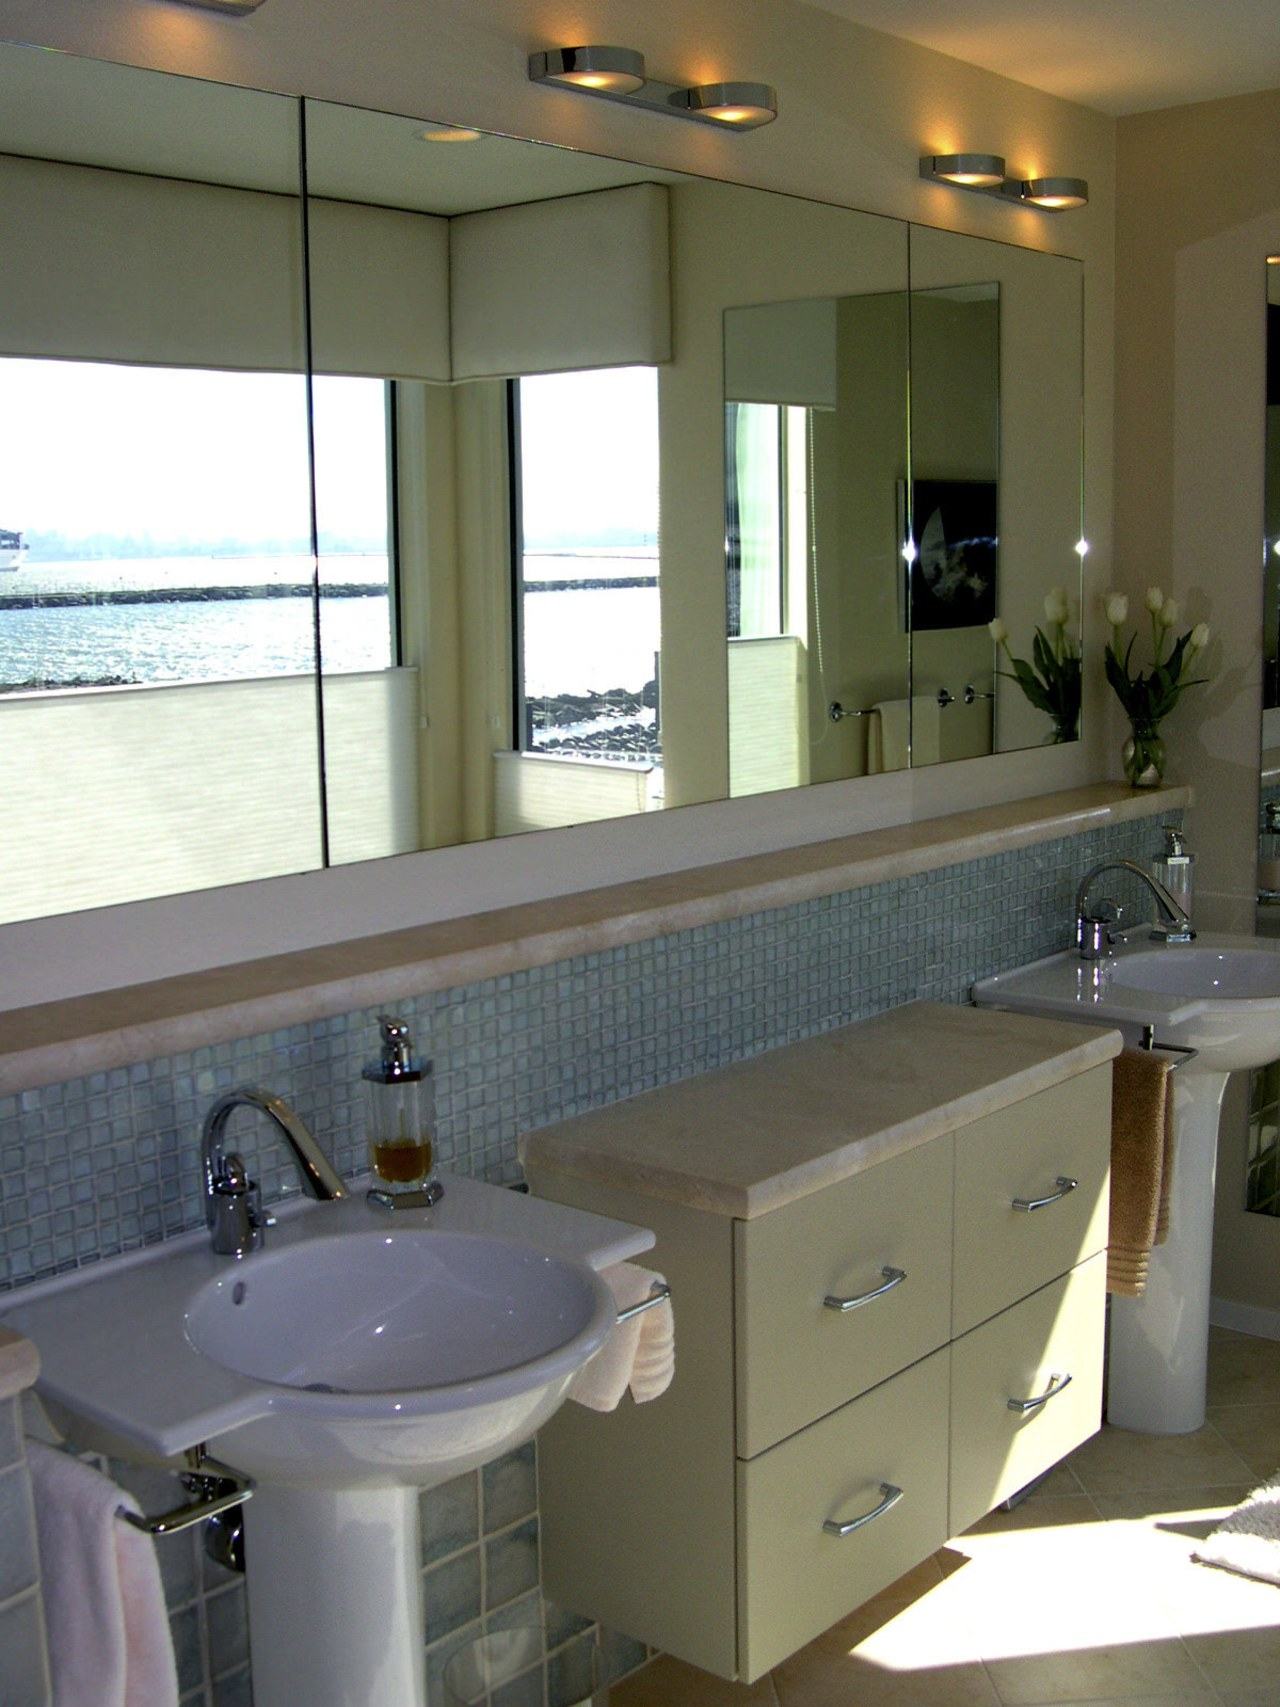 A view of some bathroomware from NKBA. bathroom, bathroom accessory, cabinetry, countertop, home, interior design, kitchen, room, sink, window, gray, brown